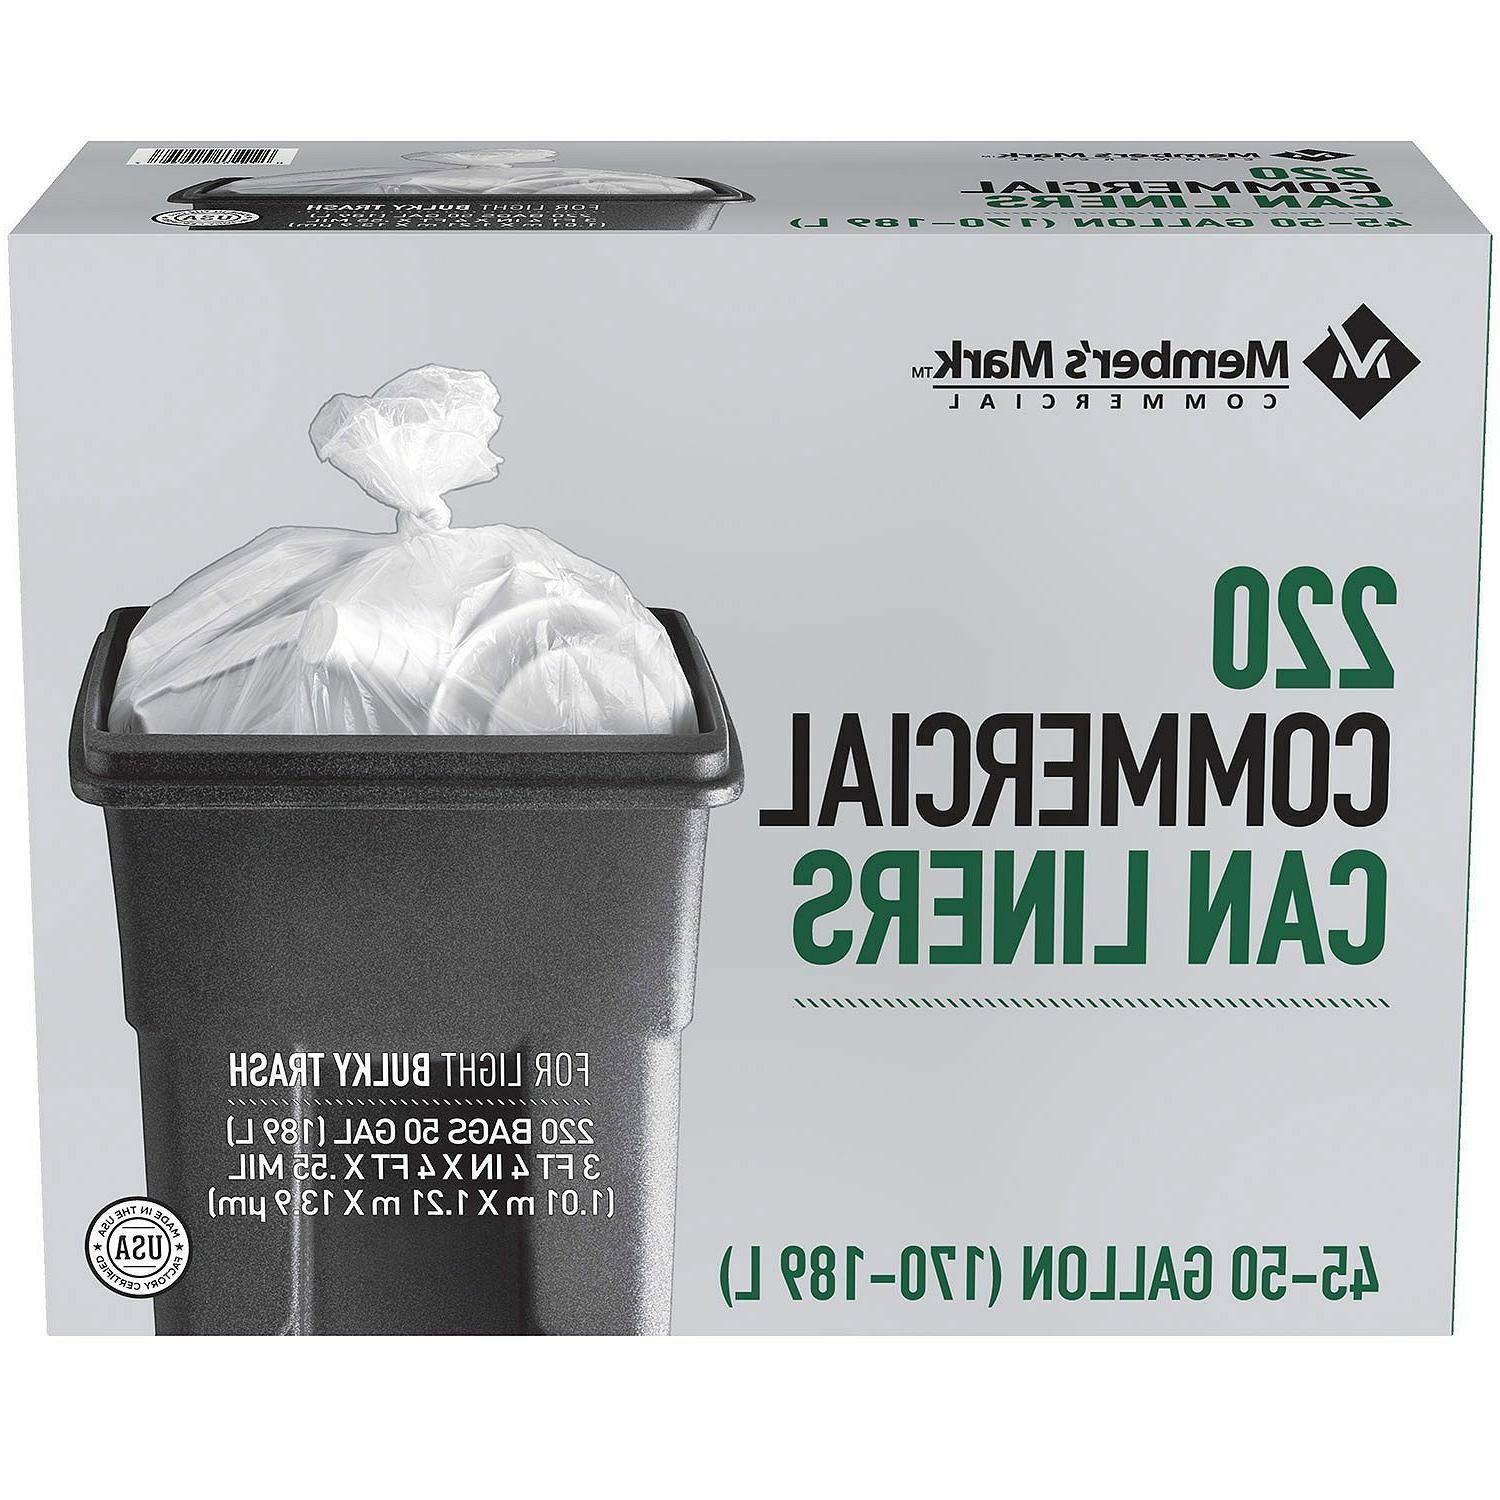 commercial trash bags